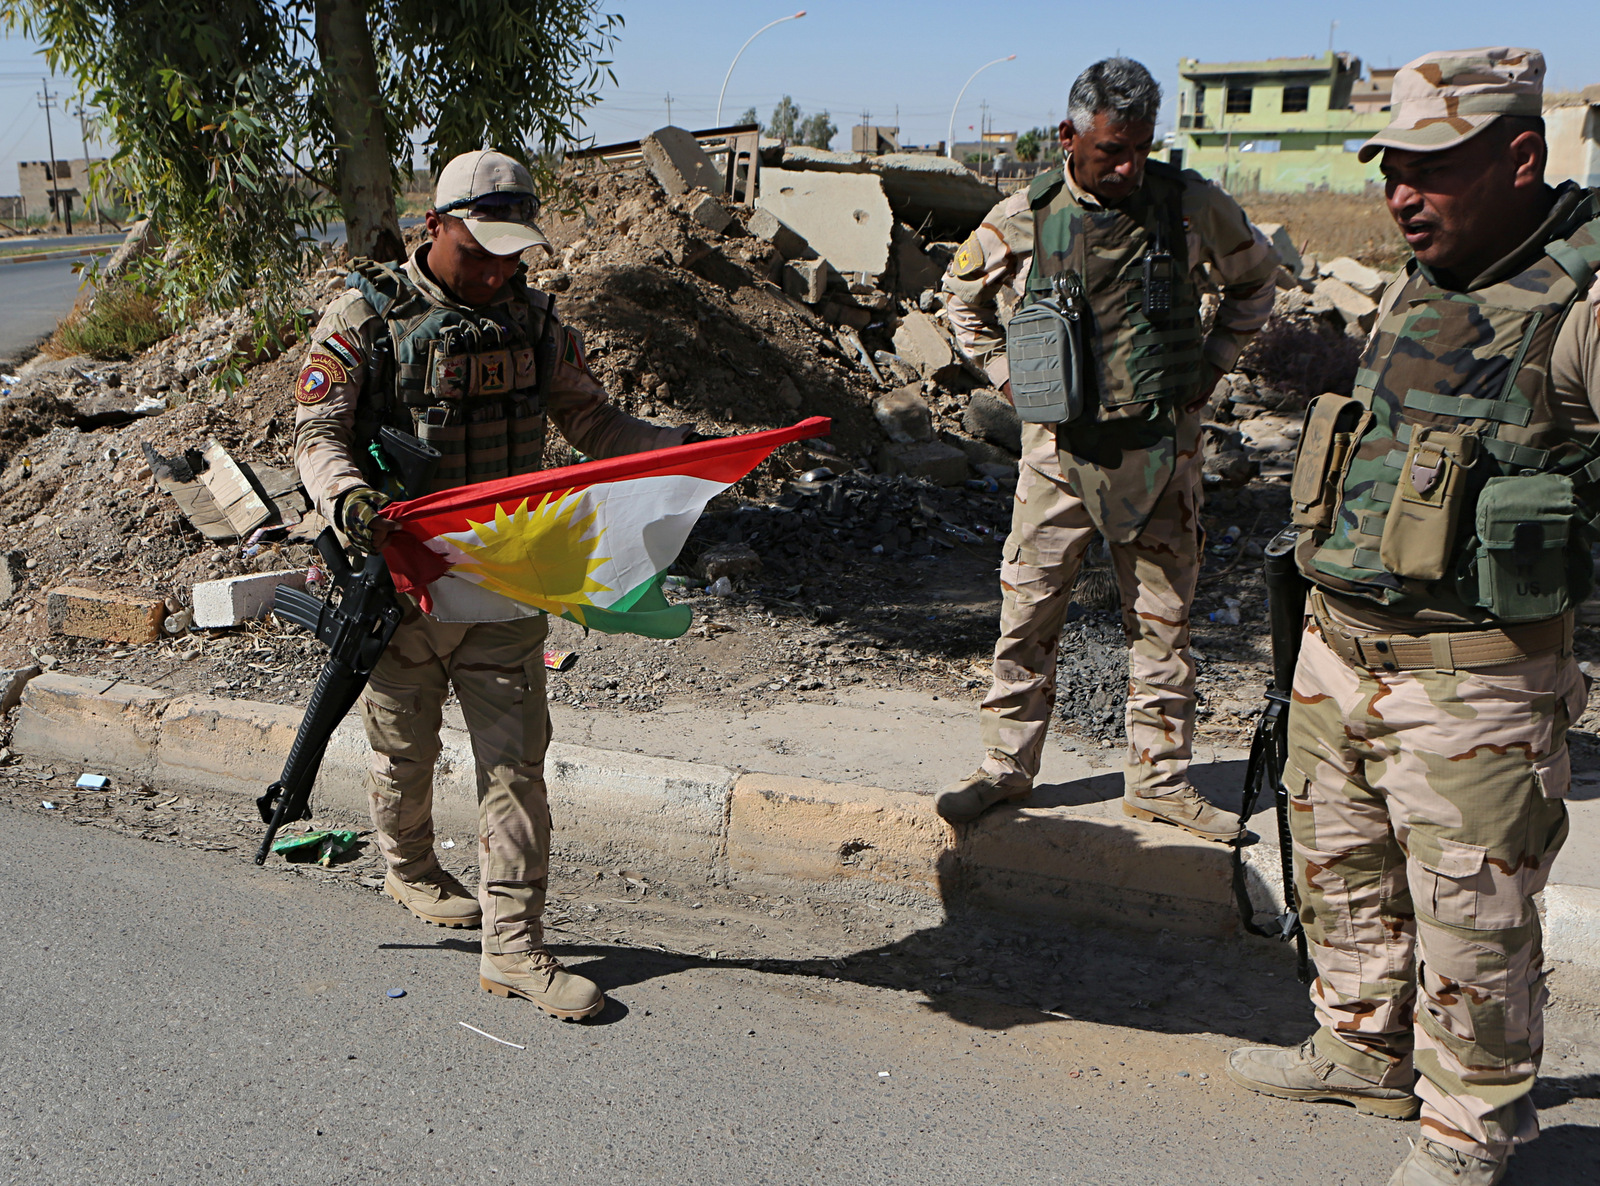 Iraqi soldiers remove a Kurdish flag from a checkpoint in Bashiqa, Iraq, Oct. 18, 2017. Iraqi forces retook control of the town on the northeastern outskirts of Mosul. Kurdish forces pulled out of disputed areas across northern and eastern Iraq a day after handing Kirkuk to federal forces amid a tense standoff following last month's vote for independence. (AP/Khalid Mohammed)